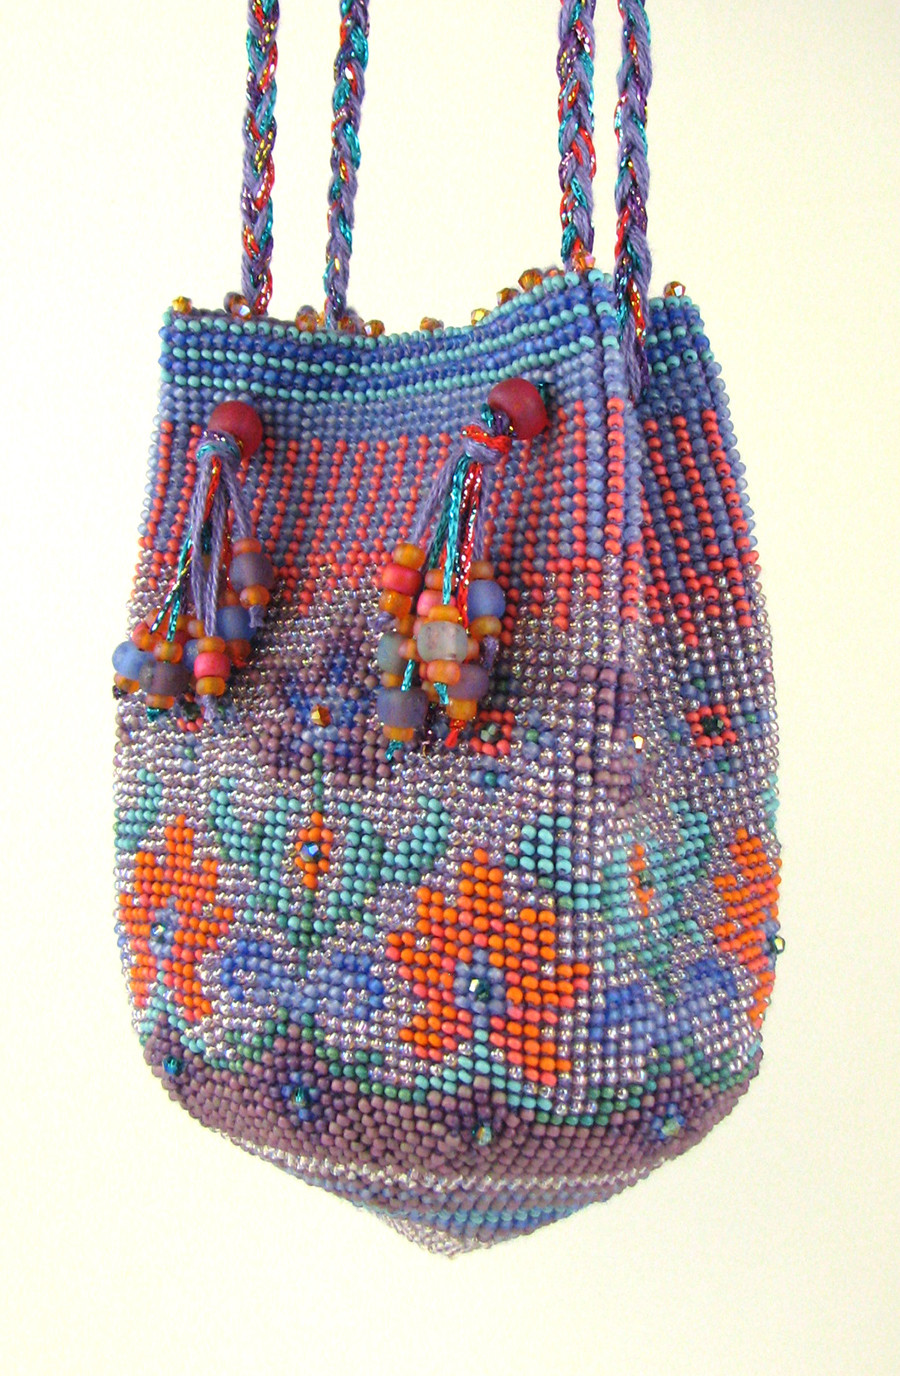 Crochet with Beads Luxury How to Crochet A Handbag for Beginners Style Guru Of Amazing 50 Models Crochet with Beads